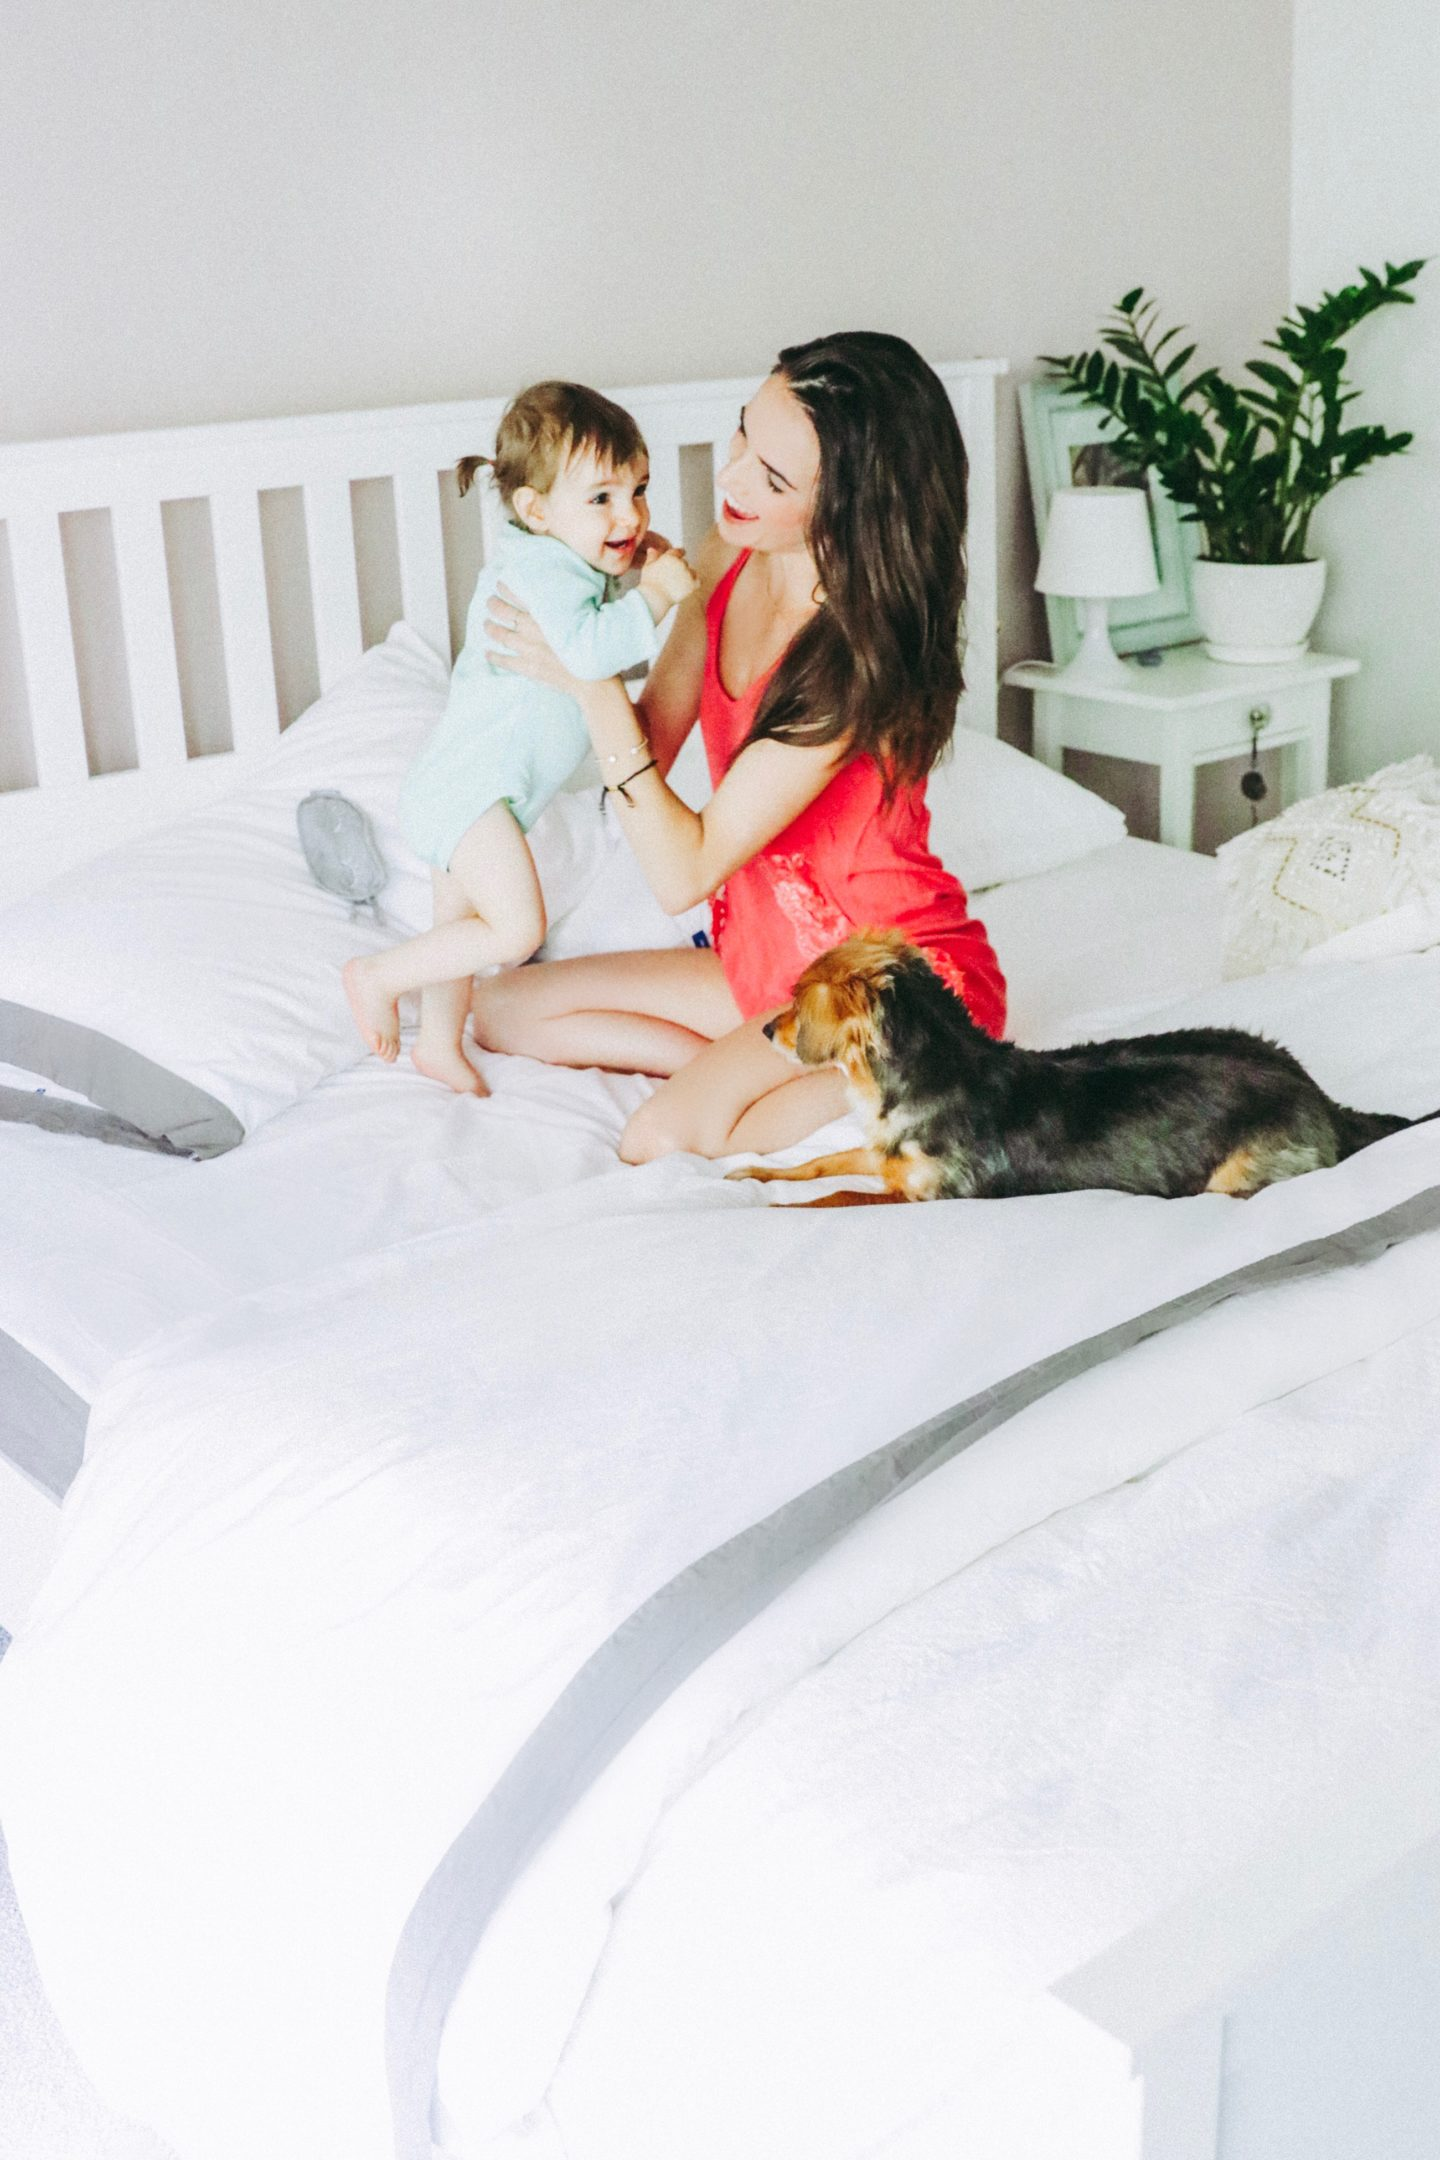 The Casual Free: 4 Ways To Get More Sleep With Kids - Family with Baby and Dog - thecasualfree.com